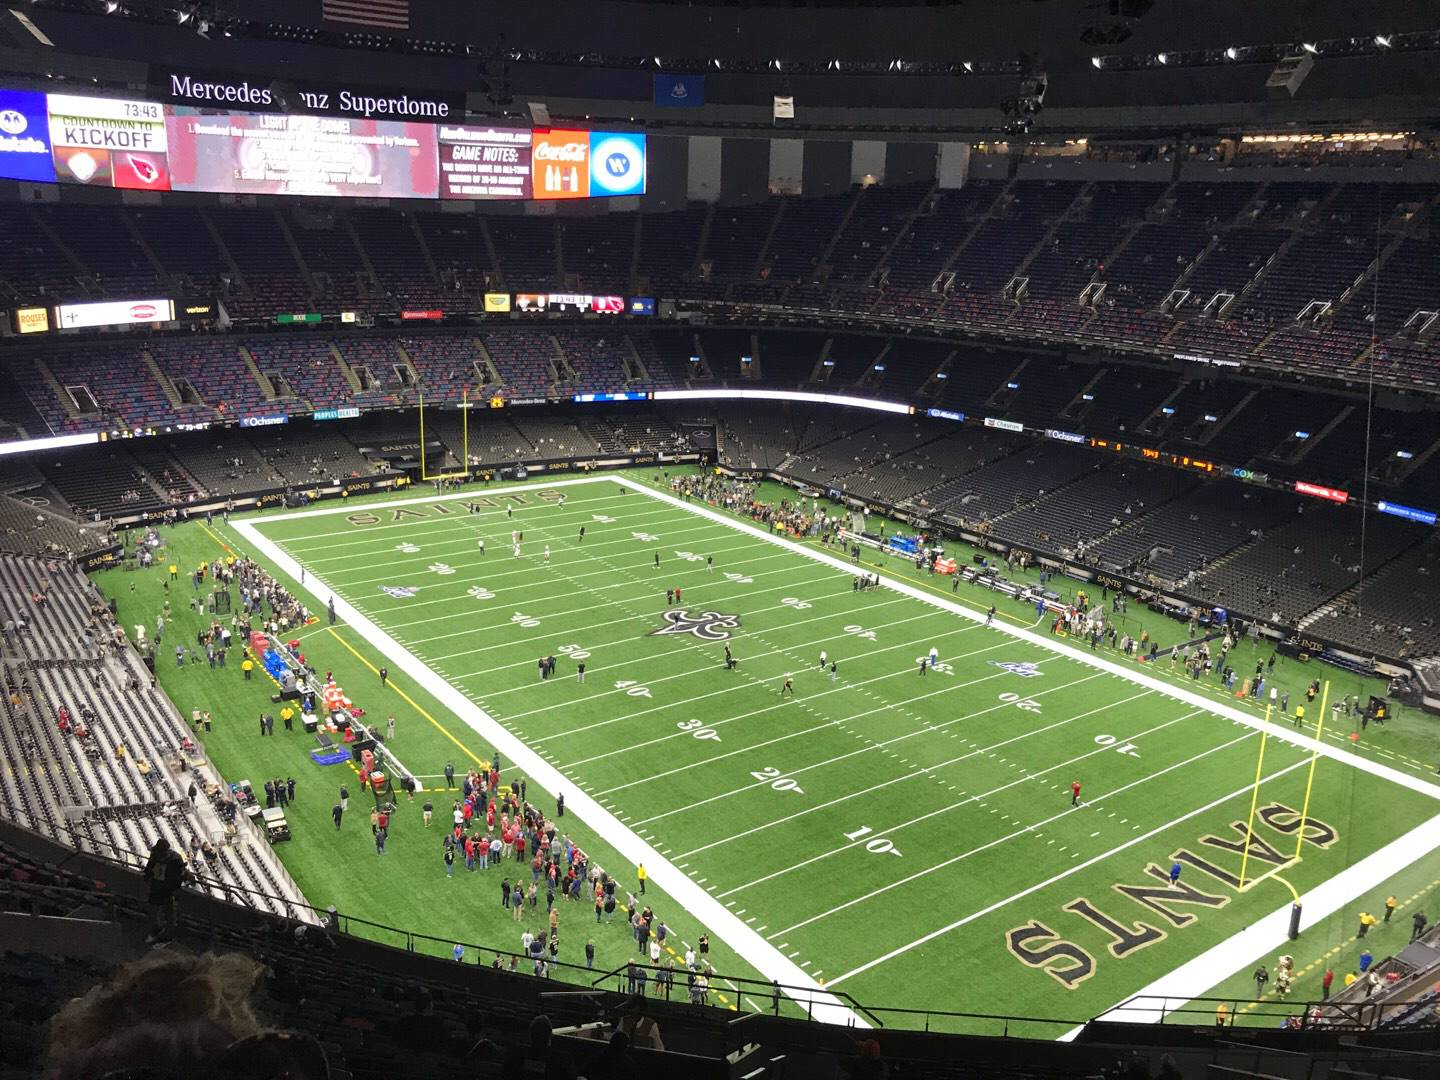 Mercedes-Benz Superdome Section 606 Row 25 Seat 22